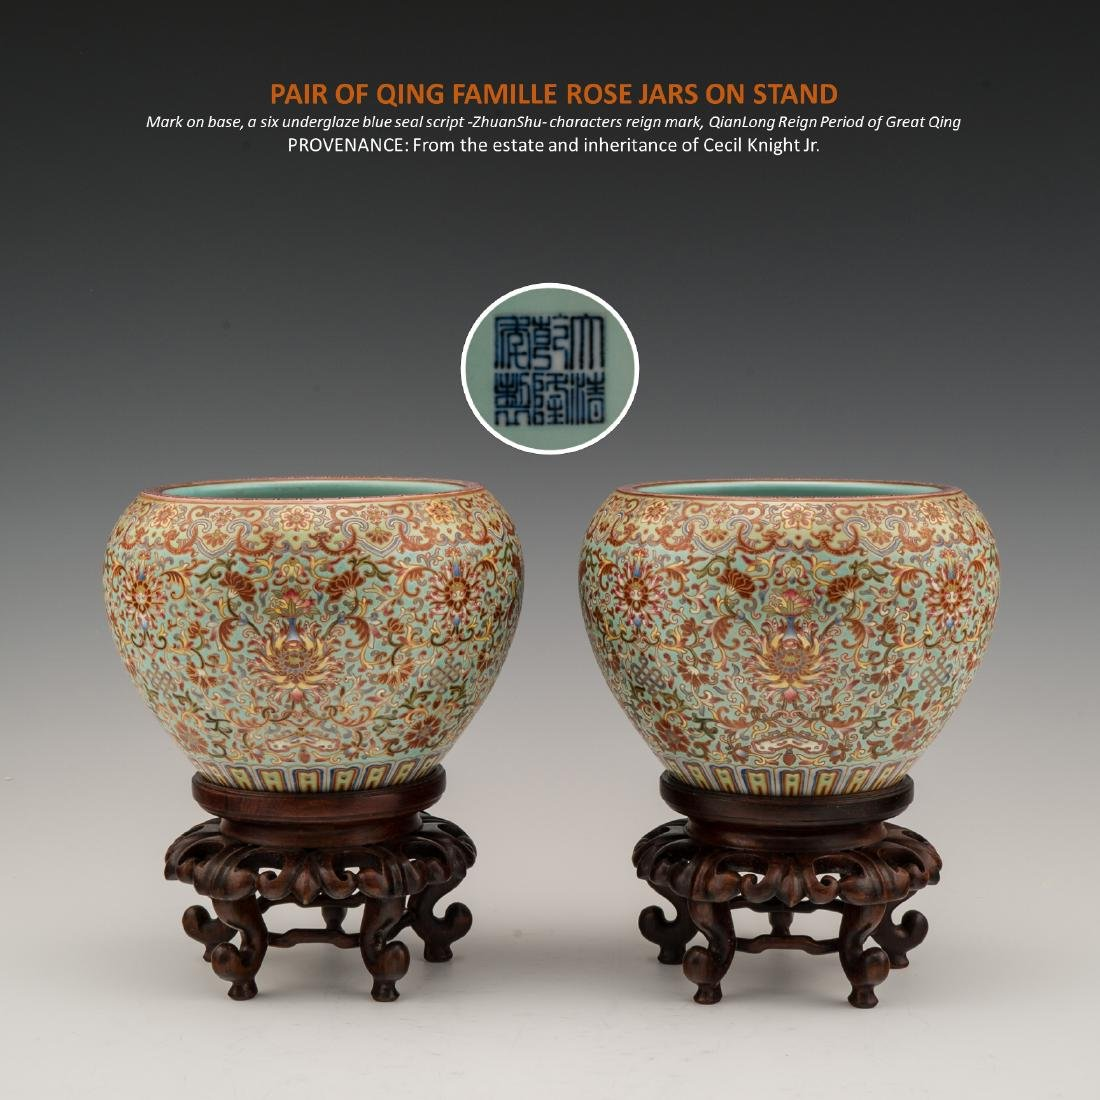 PAIR OF QING FAMILLE ROSE JARS ON STAND